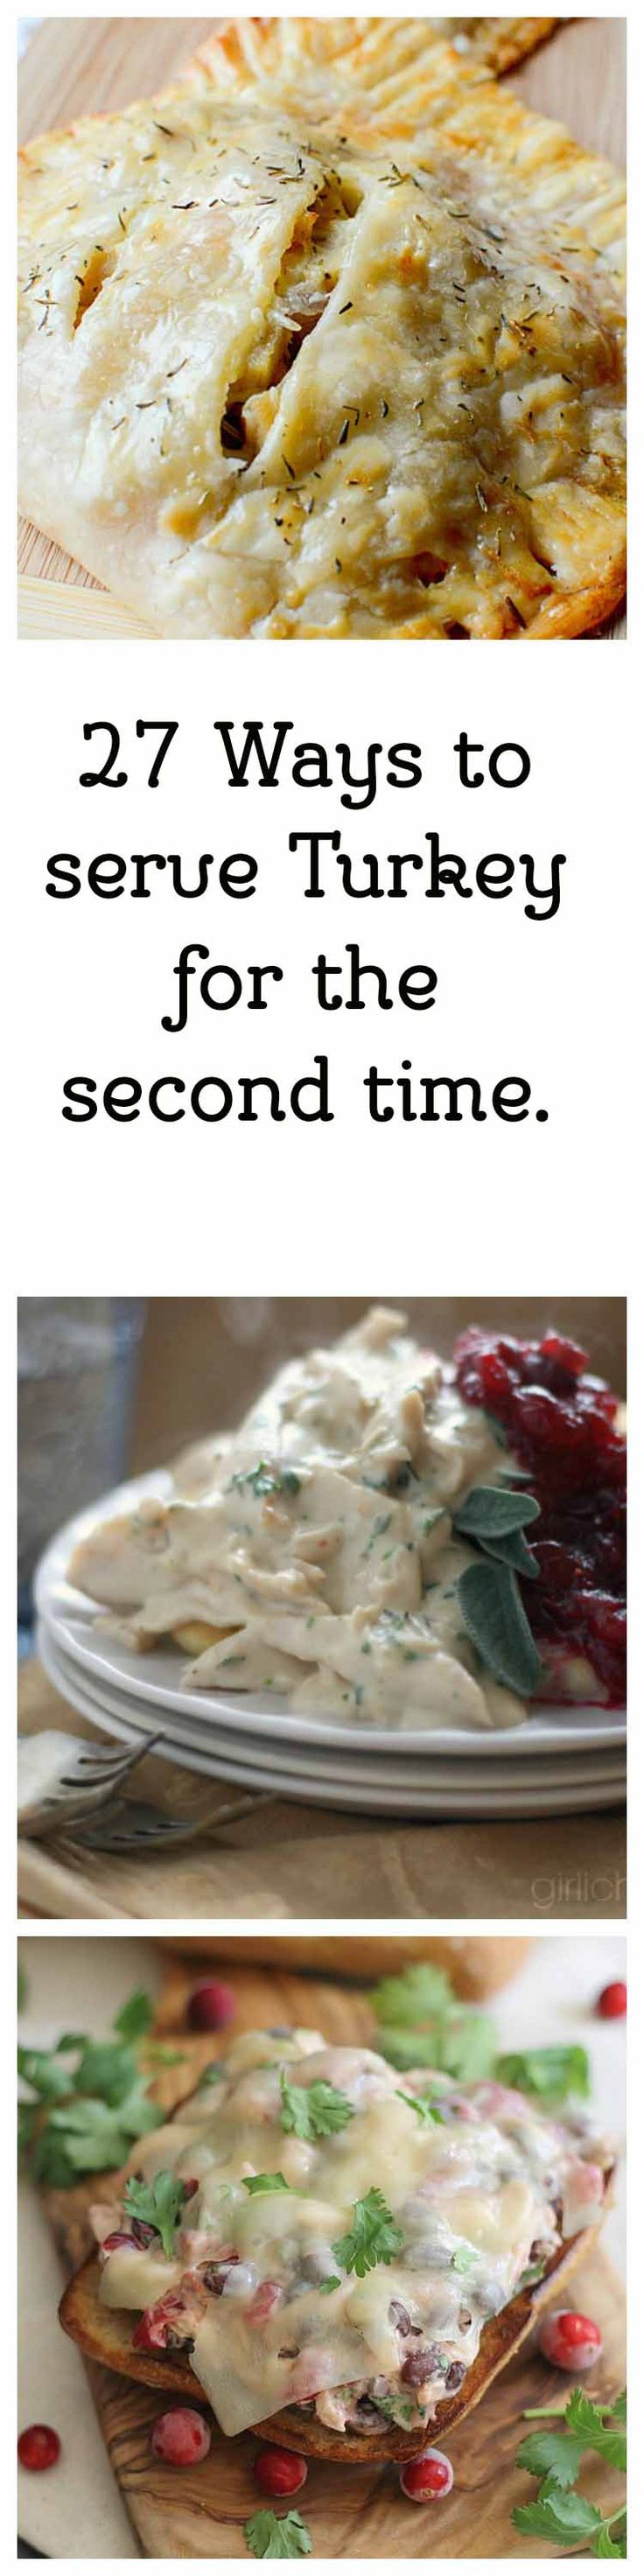 Great round-up of recipes for leftover turkey from Parade.com via Stephanie Manley. Thanks for including me!